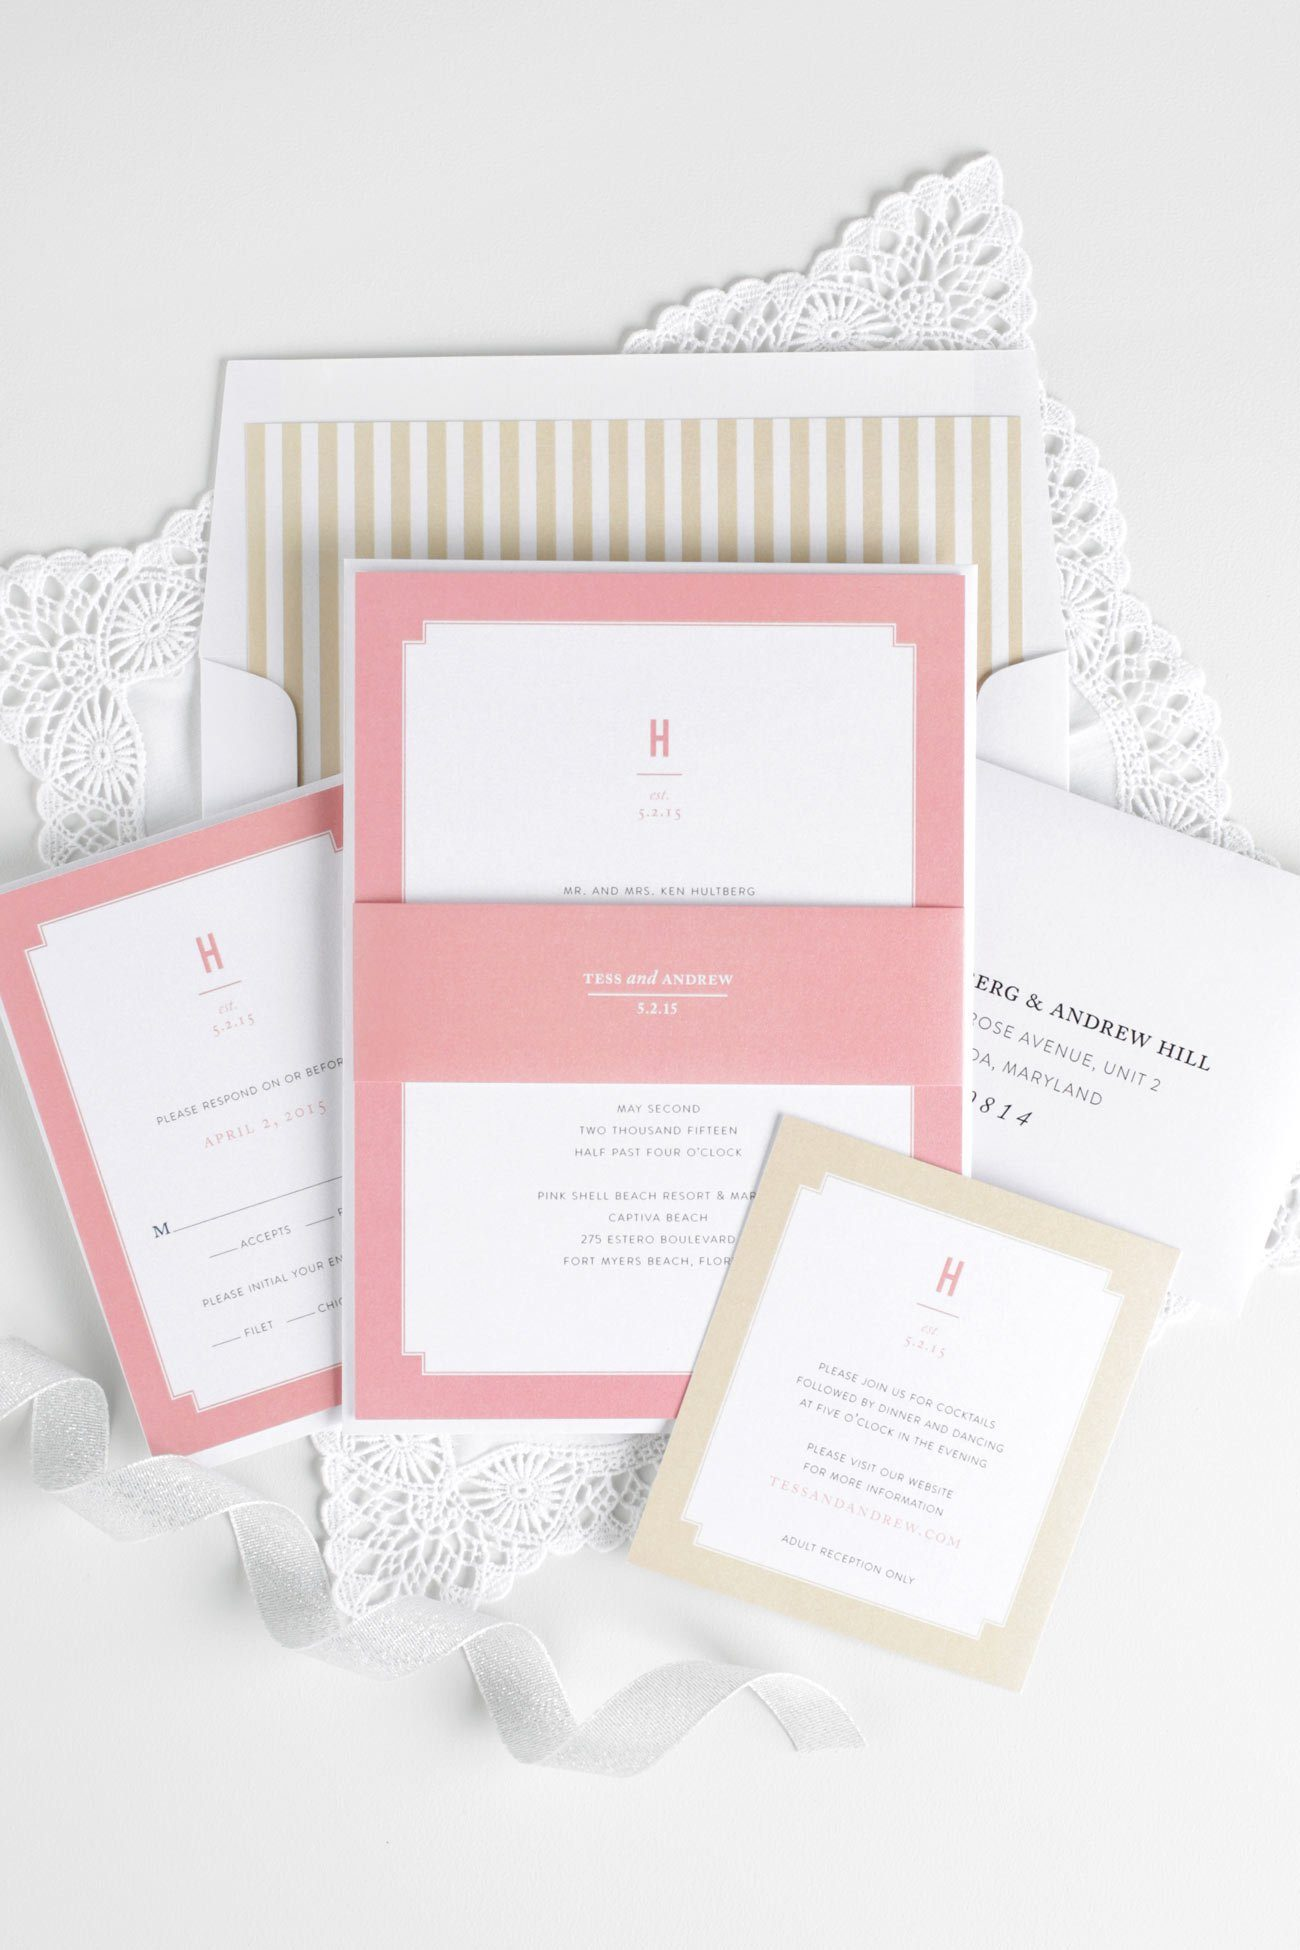 Coral and Gold wedding invitations with a striped envelope liner